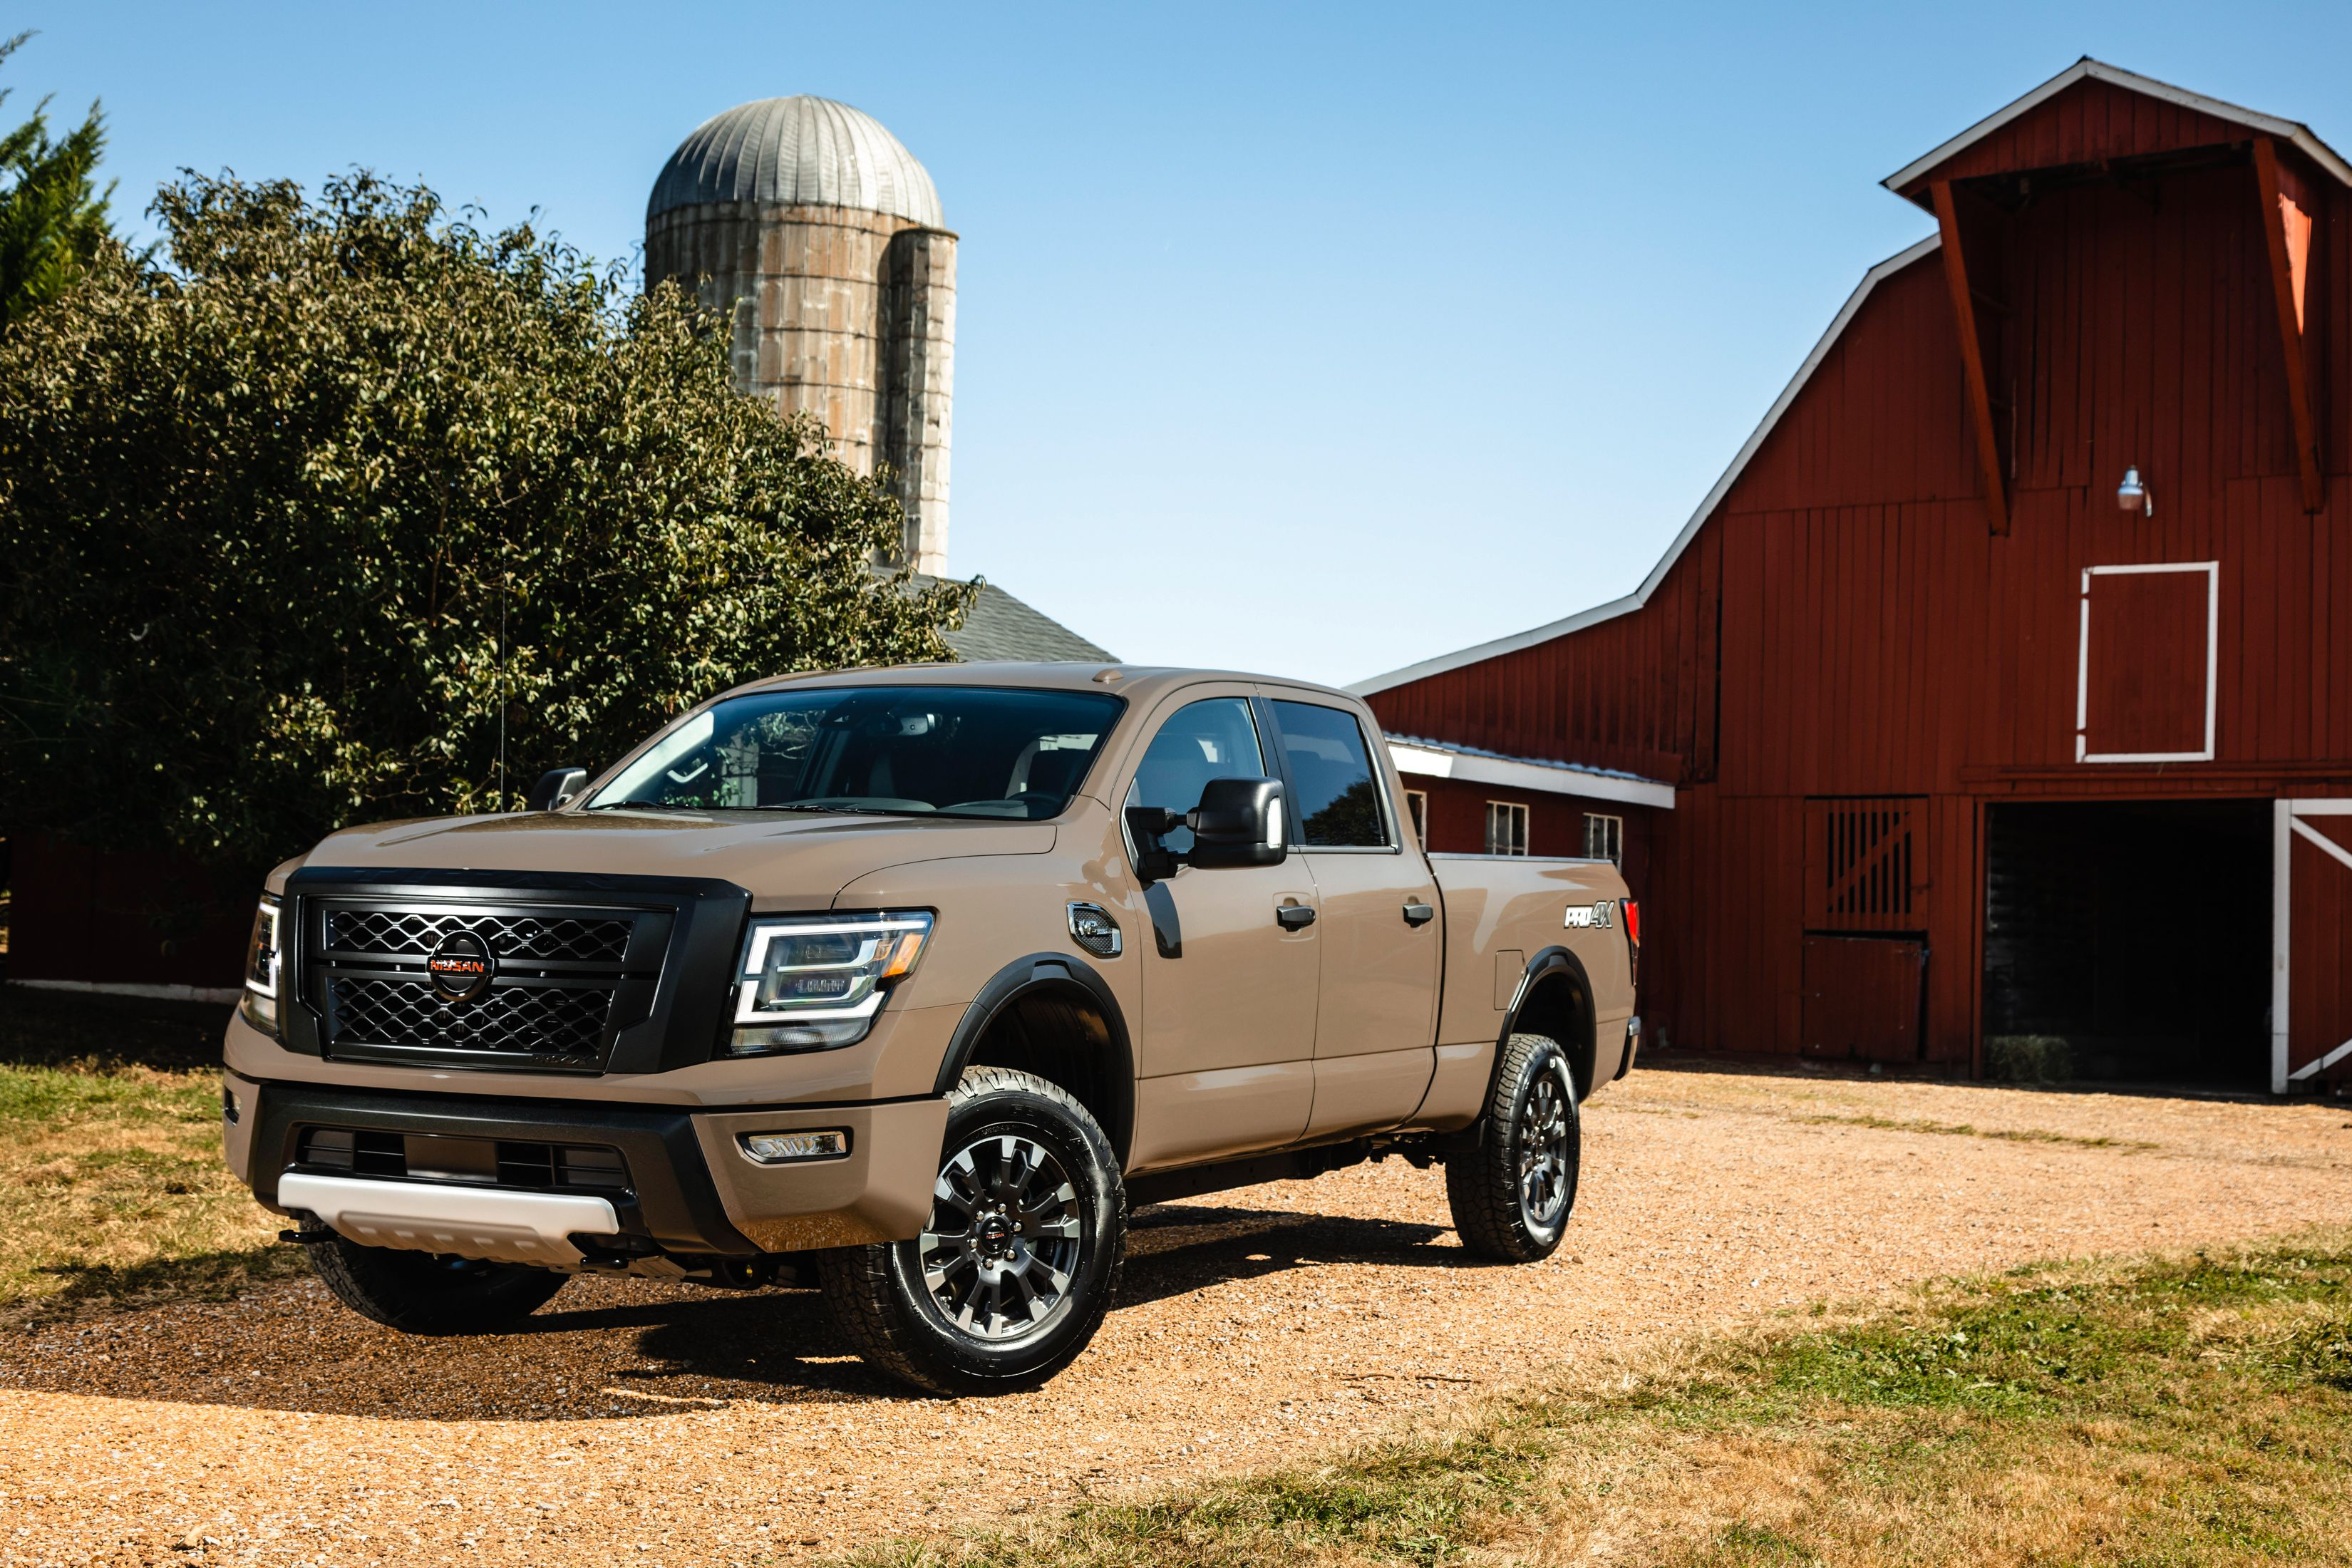 2021 Nissan Titan XD Crew Cab Review - Trims, Features, MPG, Towing Capacity, And Rivals